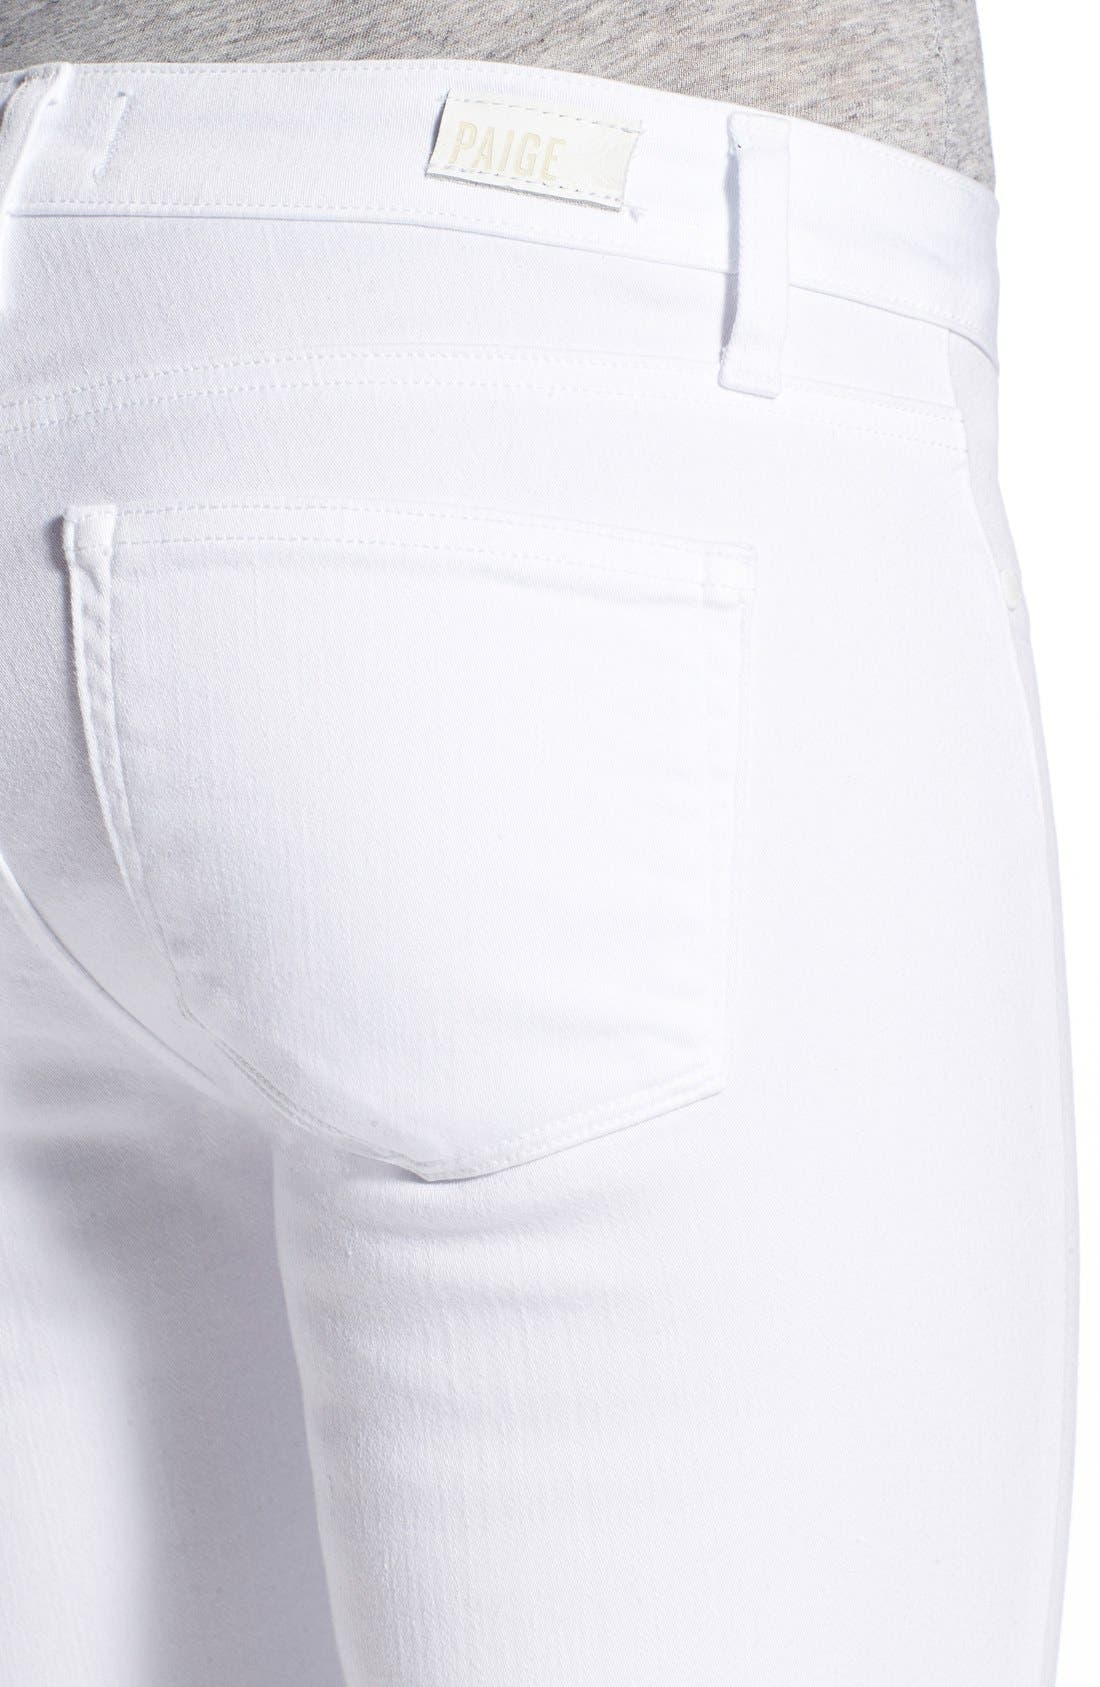 PAIGE, 'Verdugo' Ankle Skinny Jeans, Alternate thumbnail 2, color, ULTRA WHITE